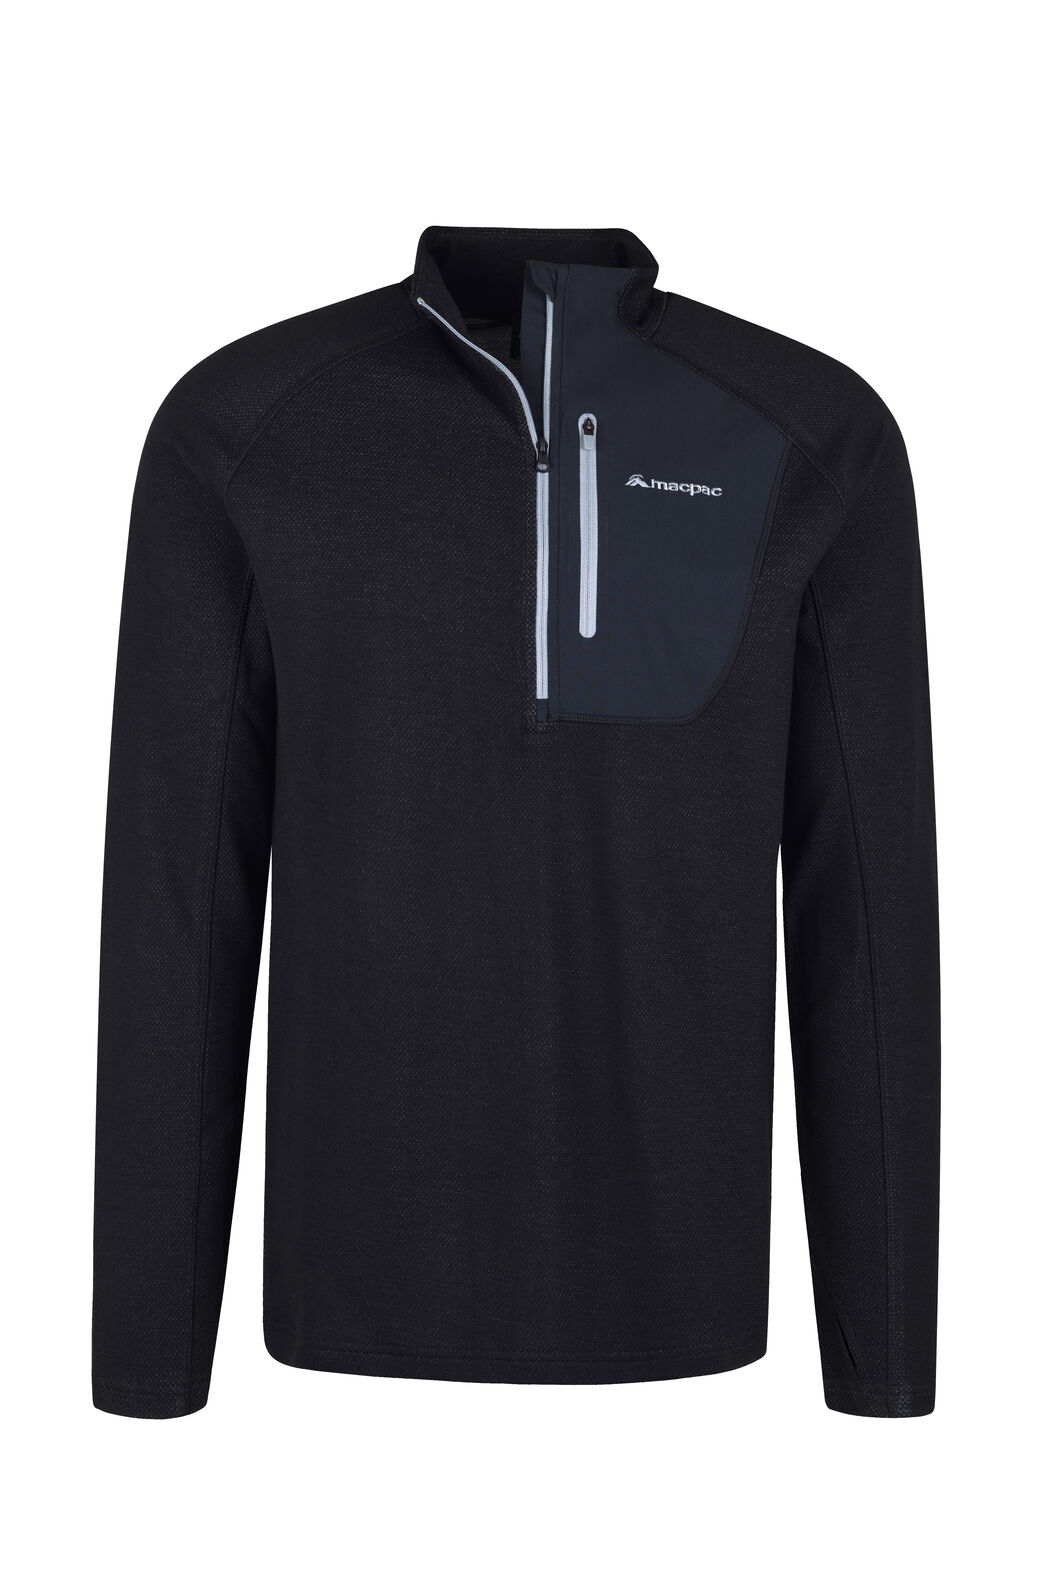 Macpac Lewis Pullover - Men's, Black, hi-res